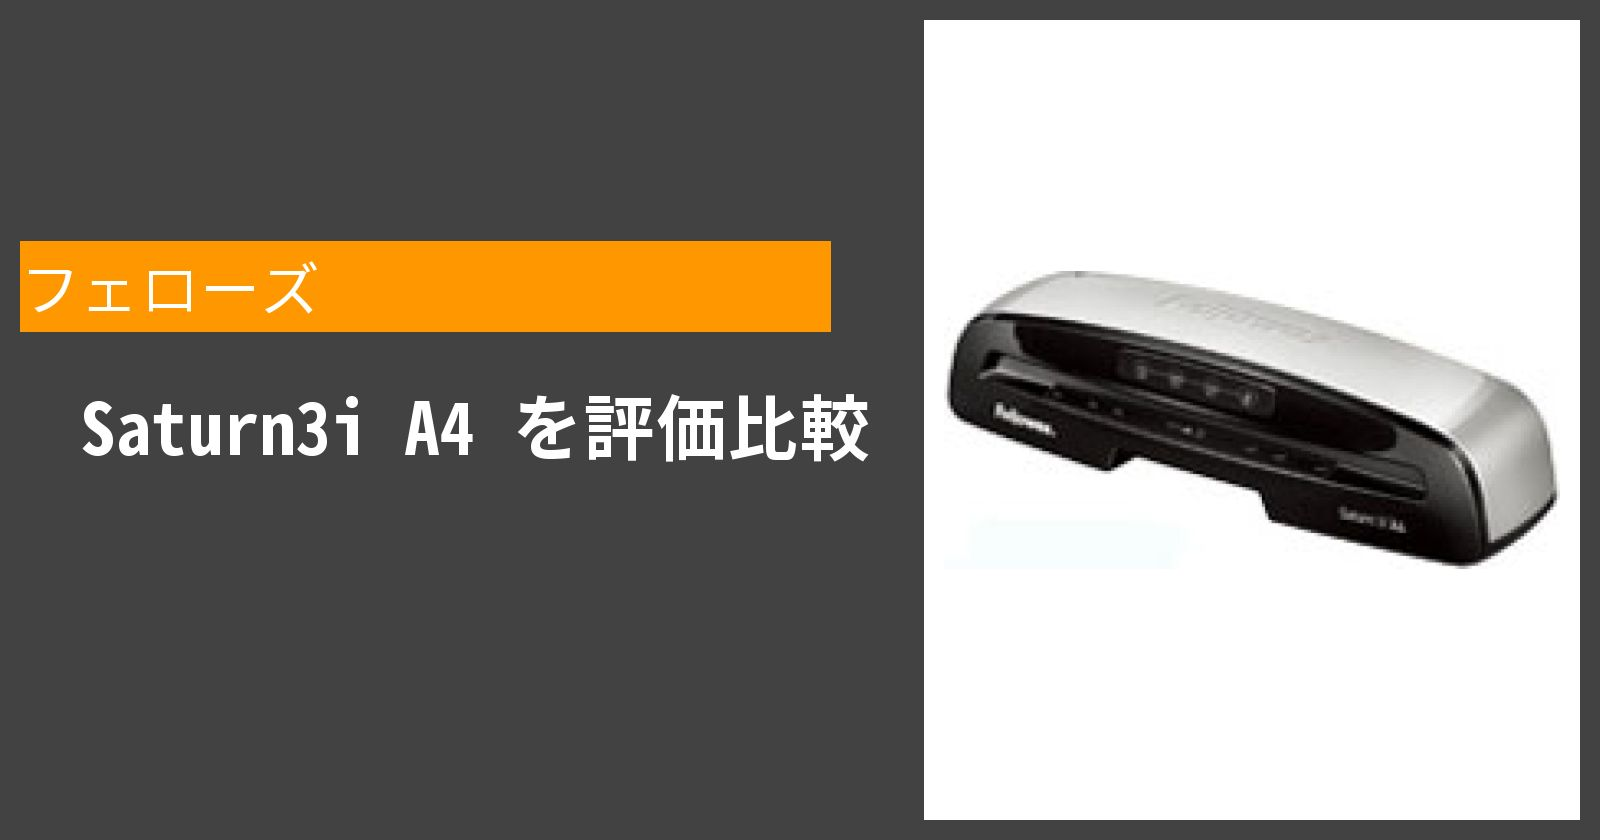 Saturn3i A4を徹底評価